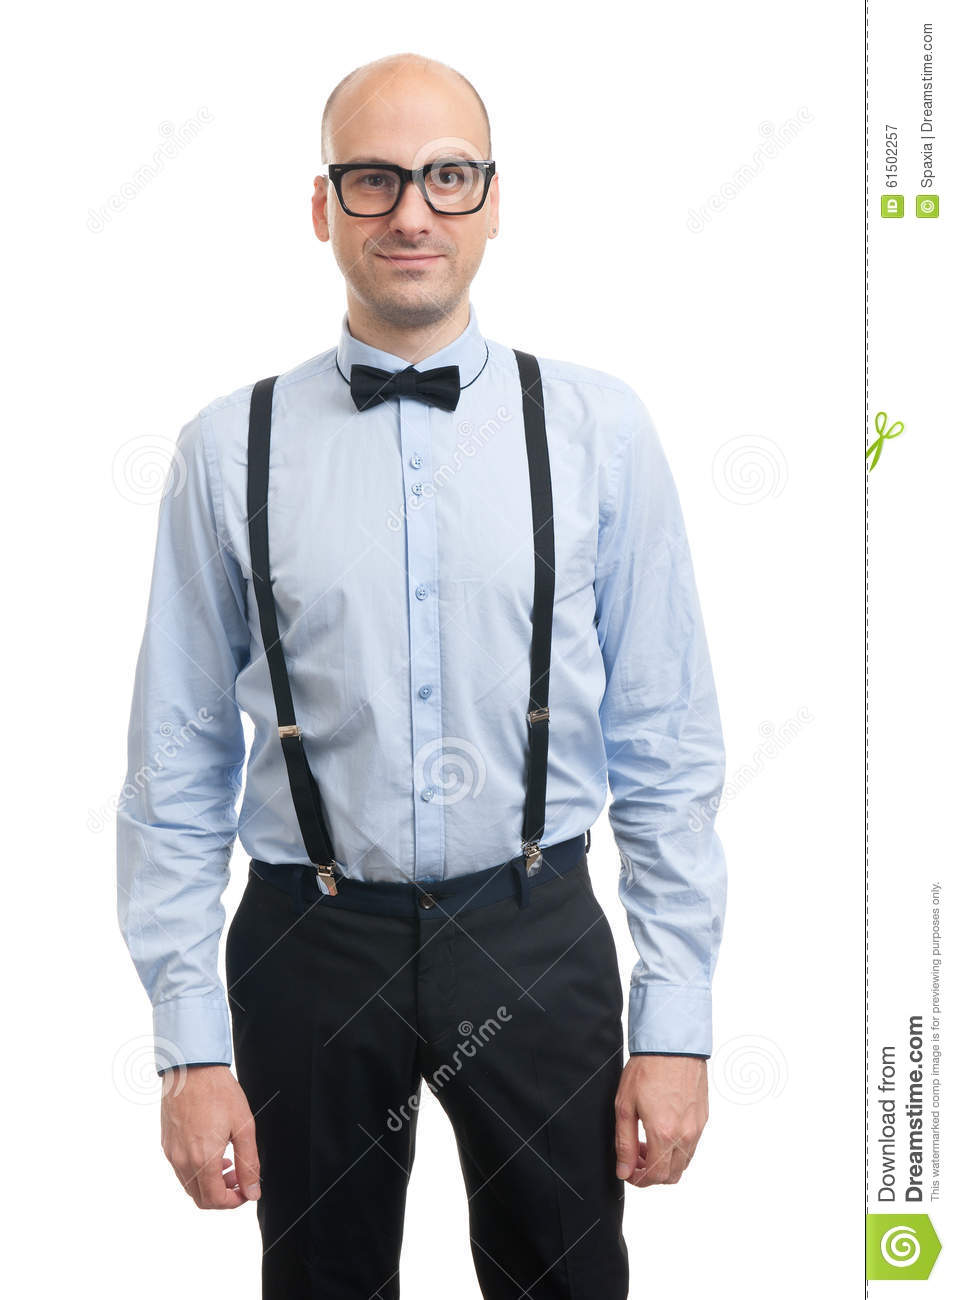 672ba44690c6 Handsome Bald Guy With Suspenders And Bow-tie Stock Image - Image of ...